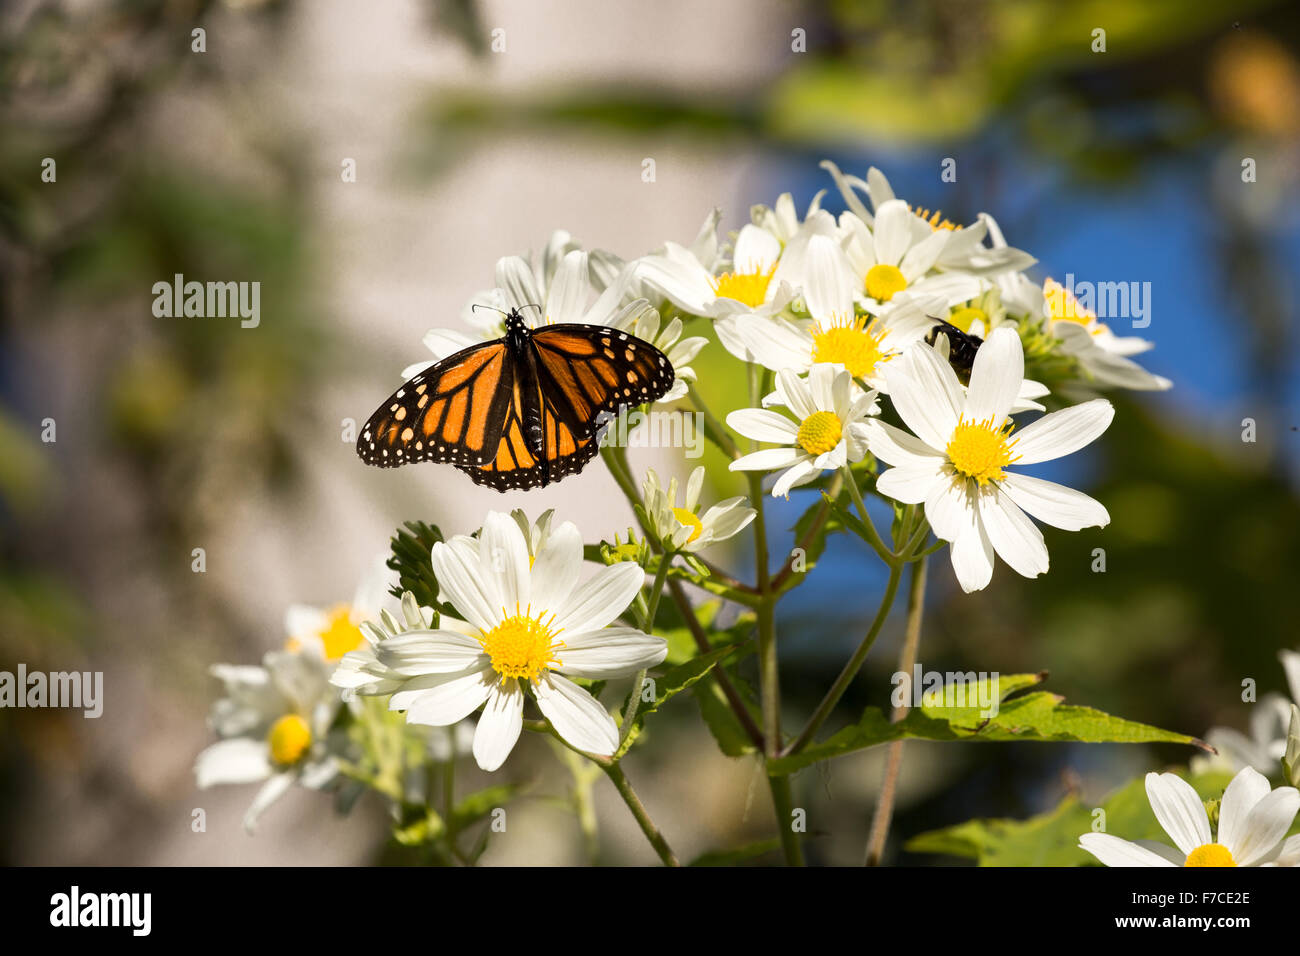 Monarch butterfly drinks daisy flower nectar - Stock Image